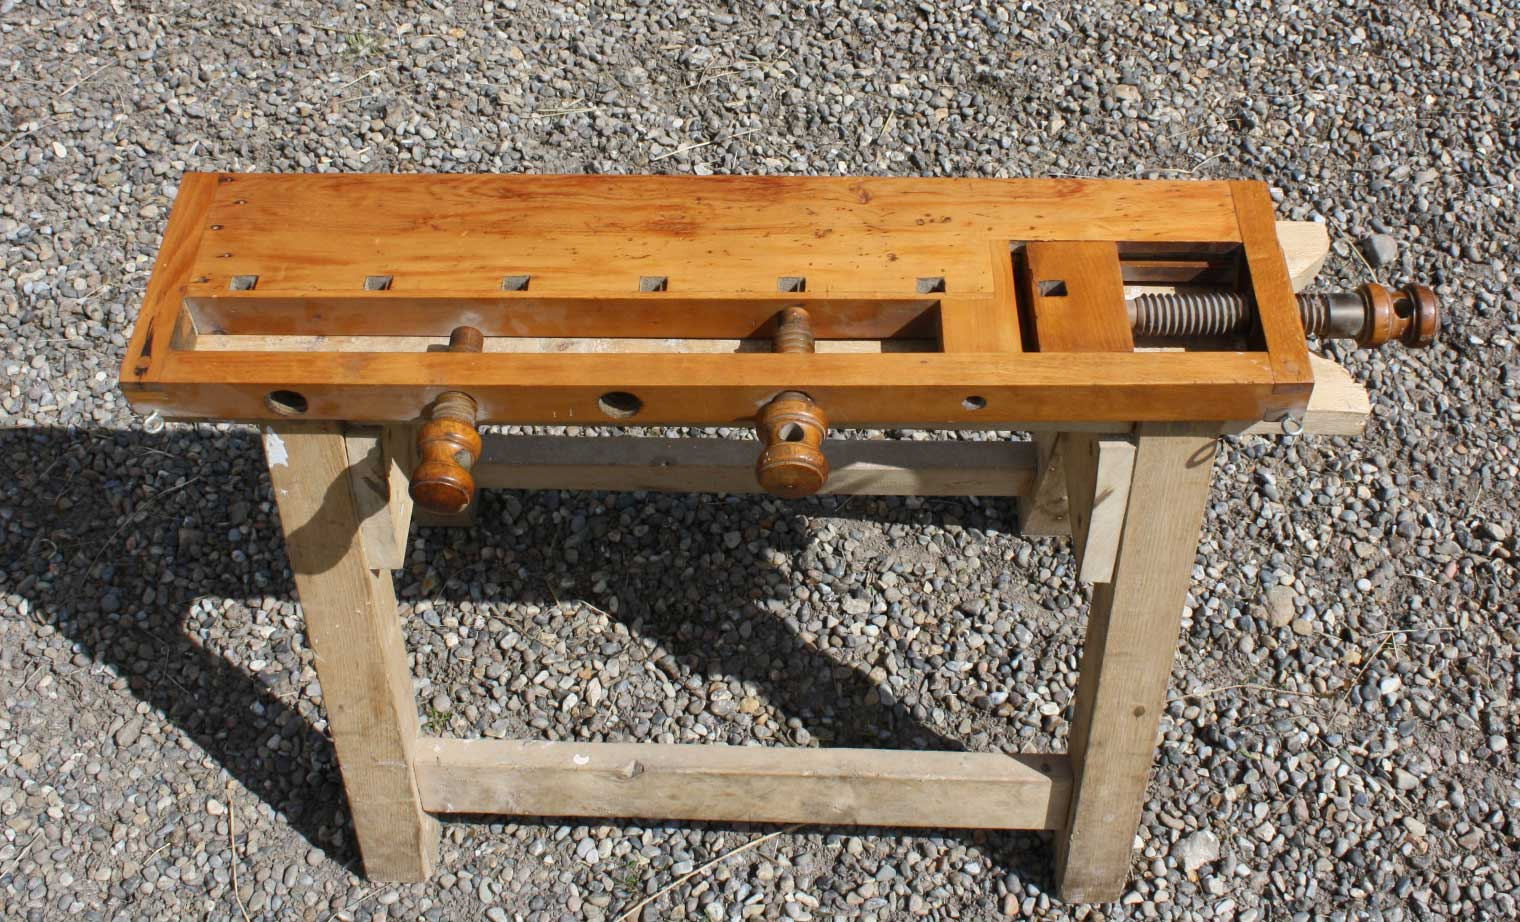 How To Build Woodworking Plans Portable Work Bench Plans